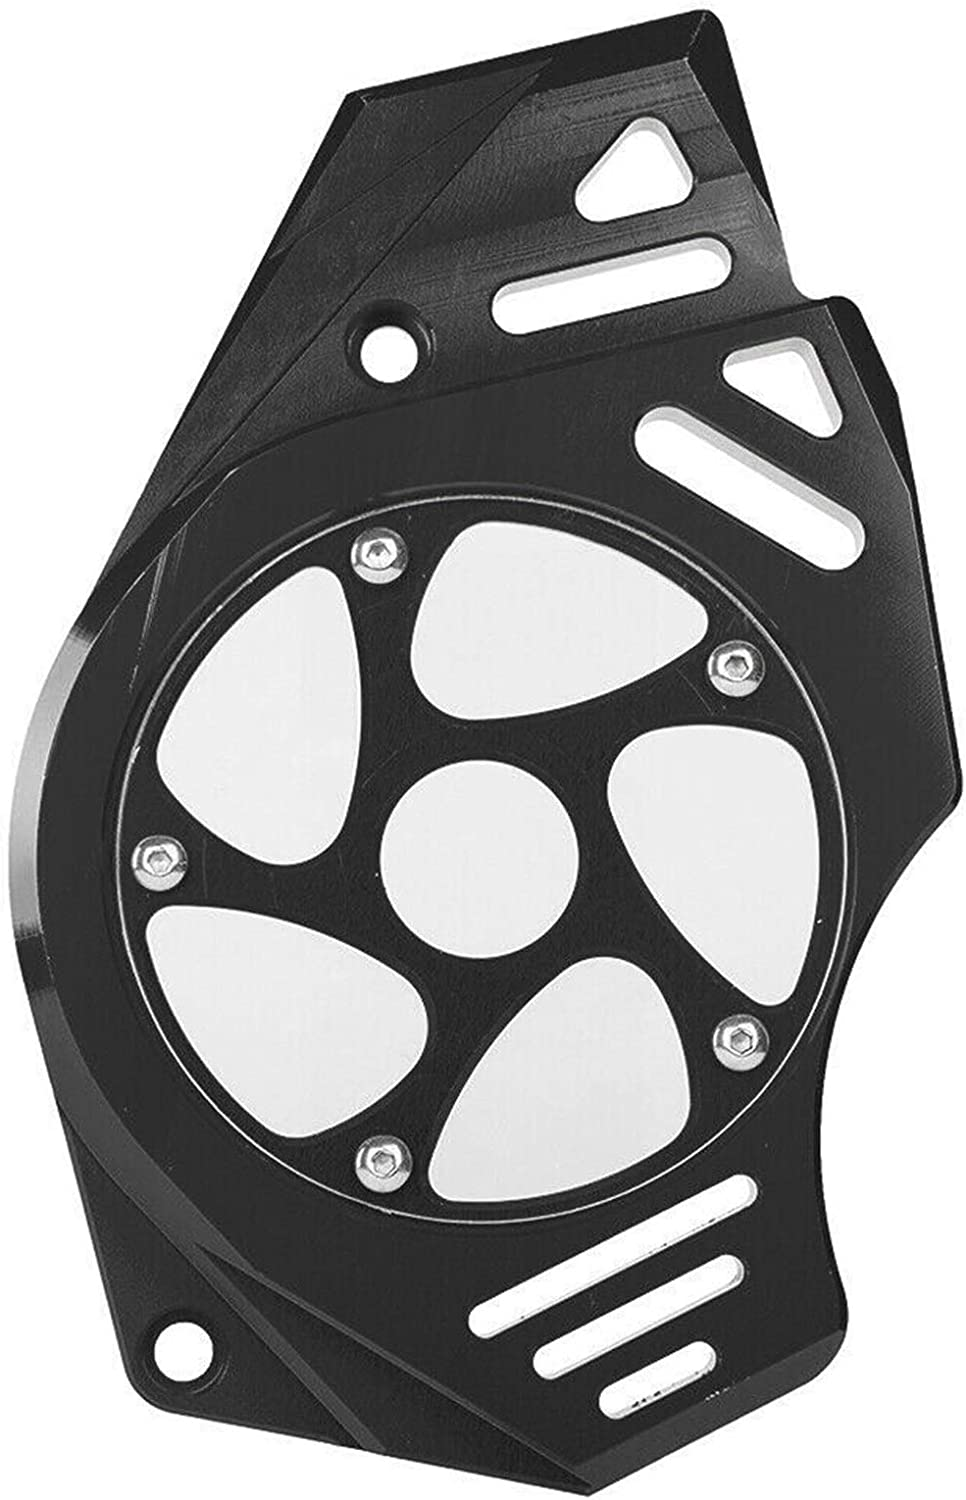 LLKHFA Front Sprocket Chain Guard Cover for 650 Slider gift S Engine Ranking TOP3